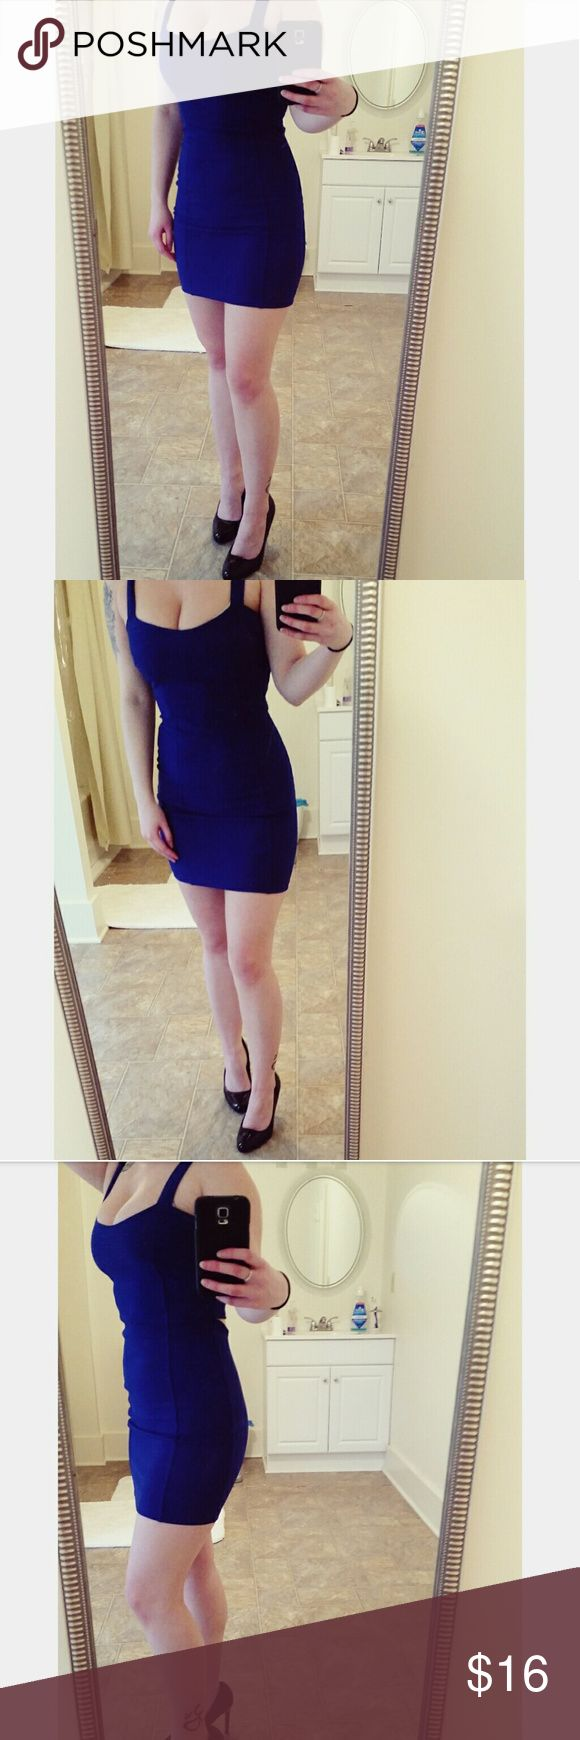 Slimming Dress Super cute, royal blue bodycon dress. Gives you a slimmer figure but is comfortable. Really cute back too. Worn I think twice! Charlotte Russe Dresses Mini